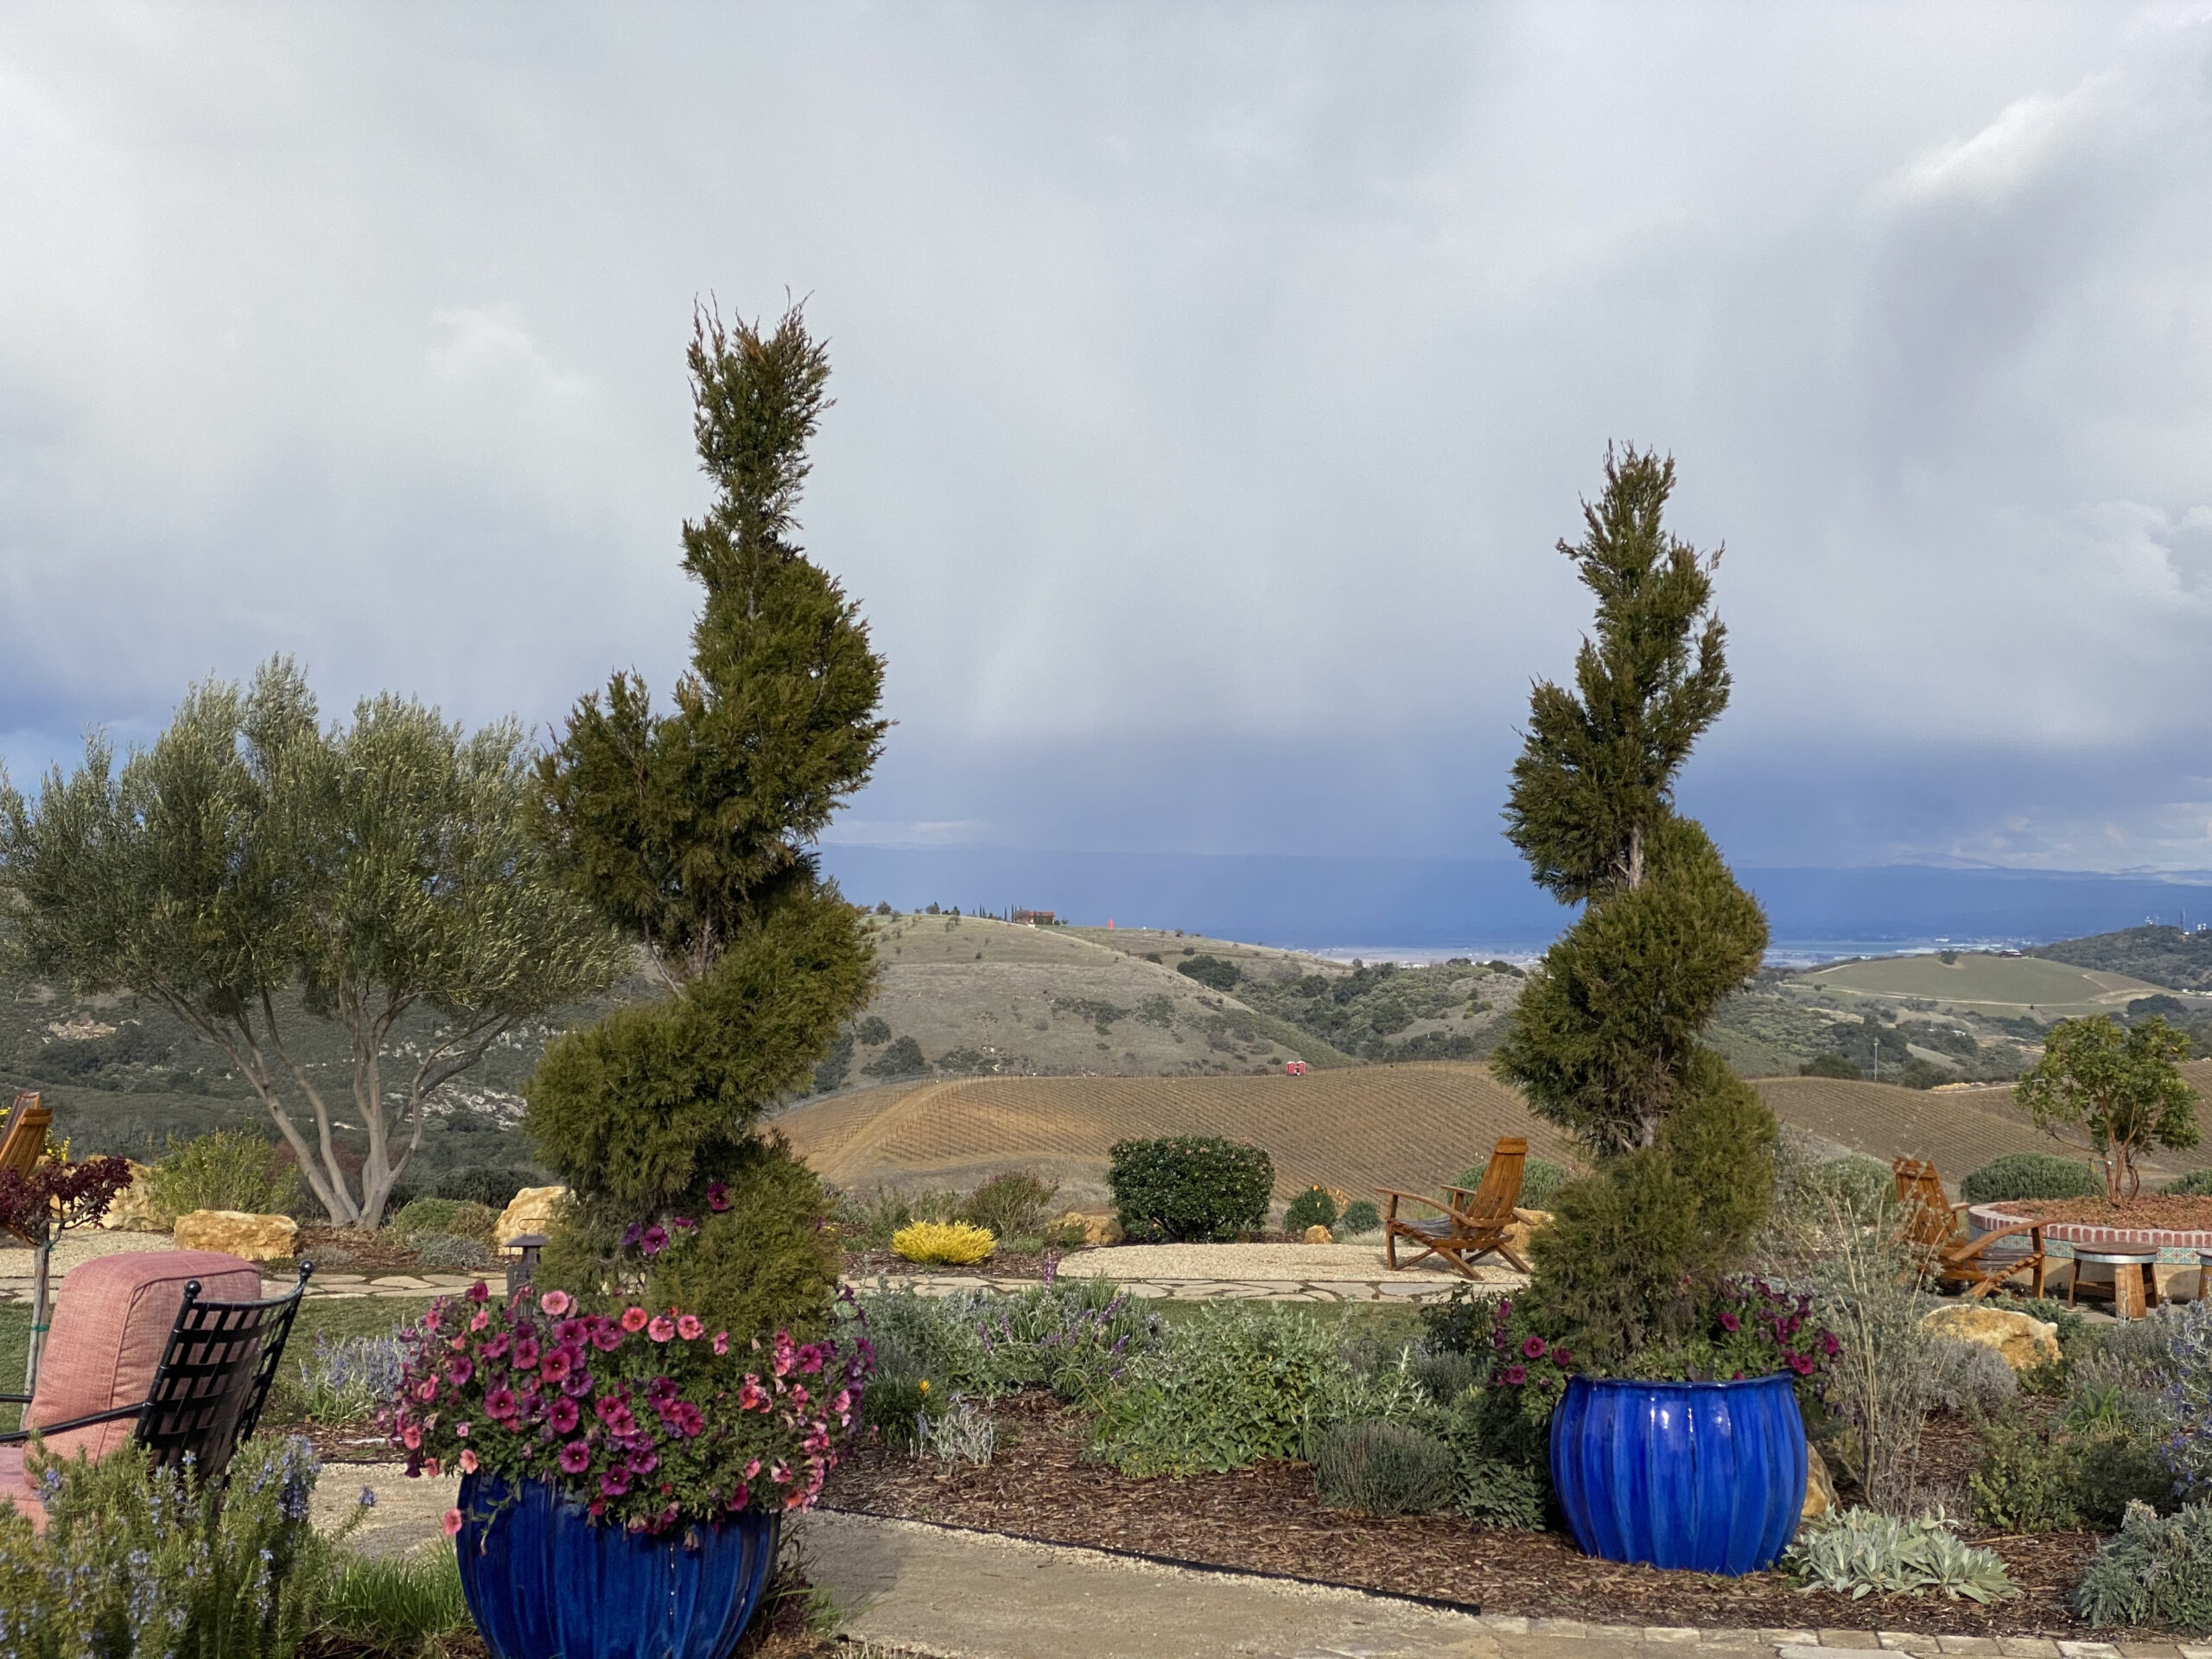 View from Daou Winery of Valley with Topiaries Surrounding It